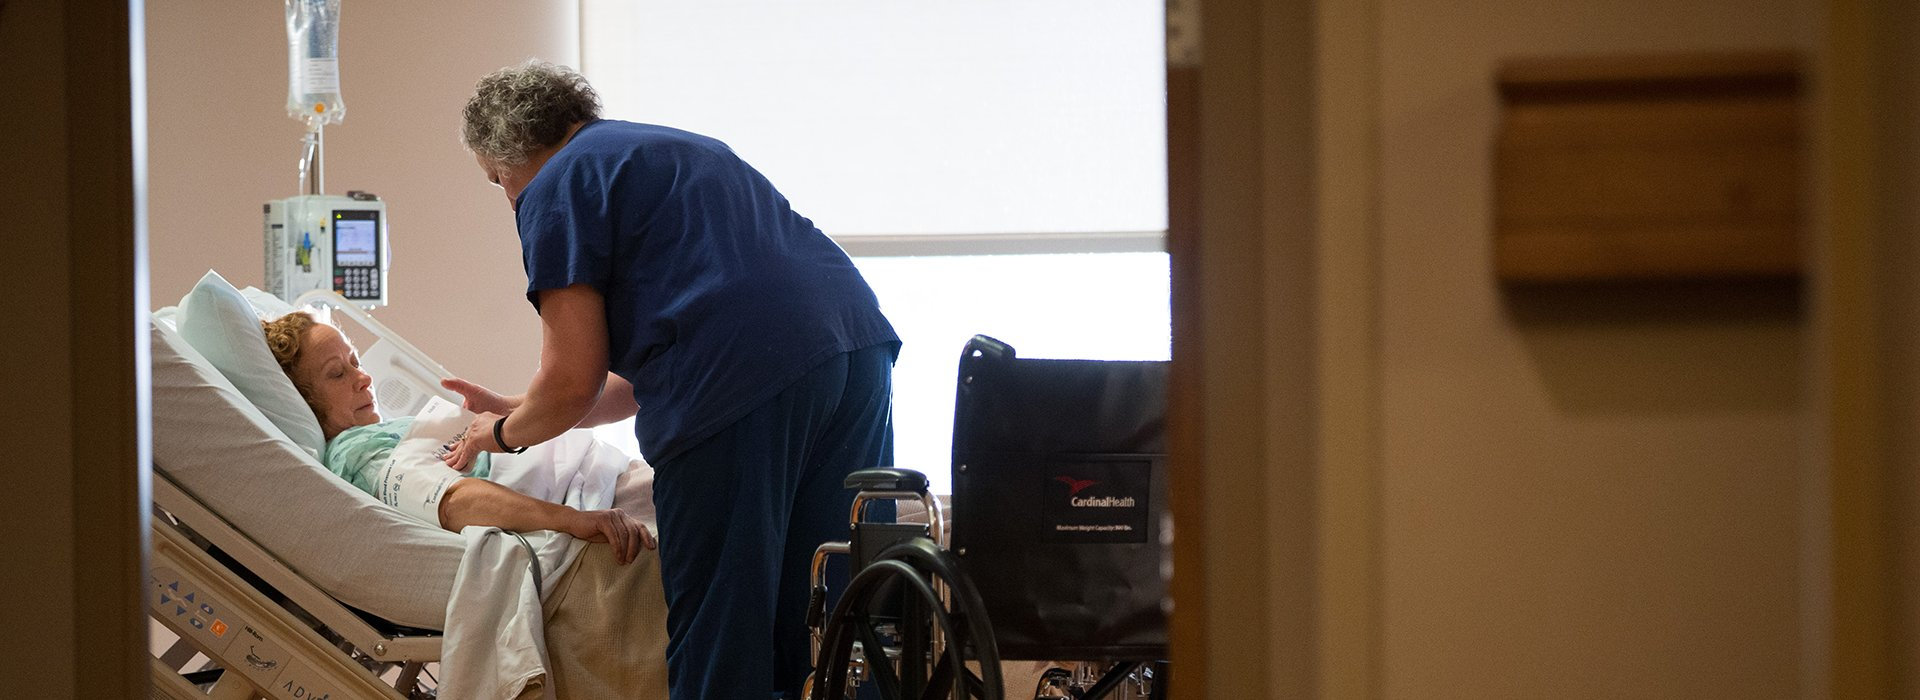 Nurse helping patient in hospital bed with wheelchair.